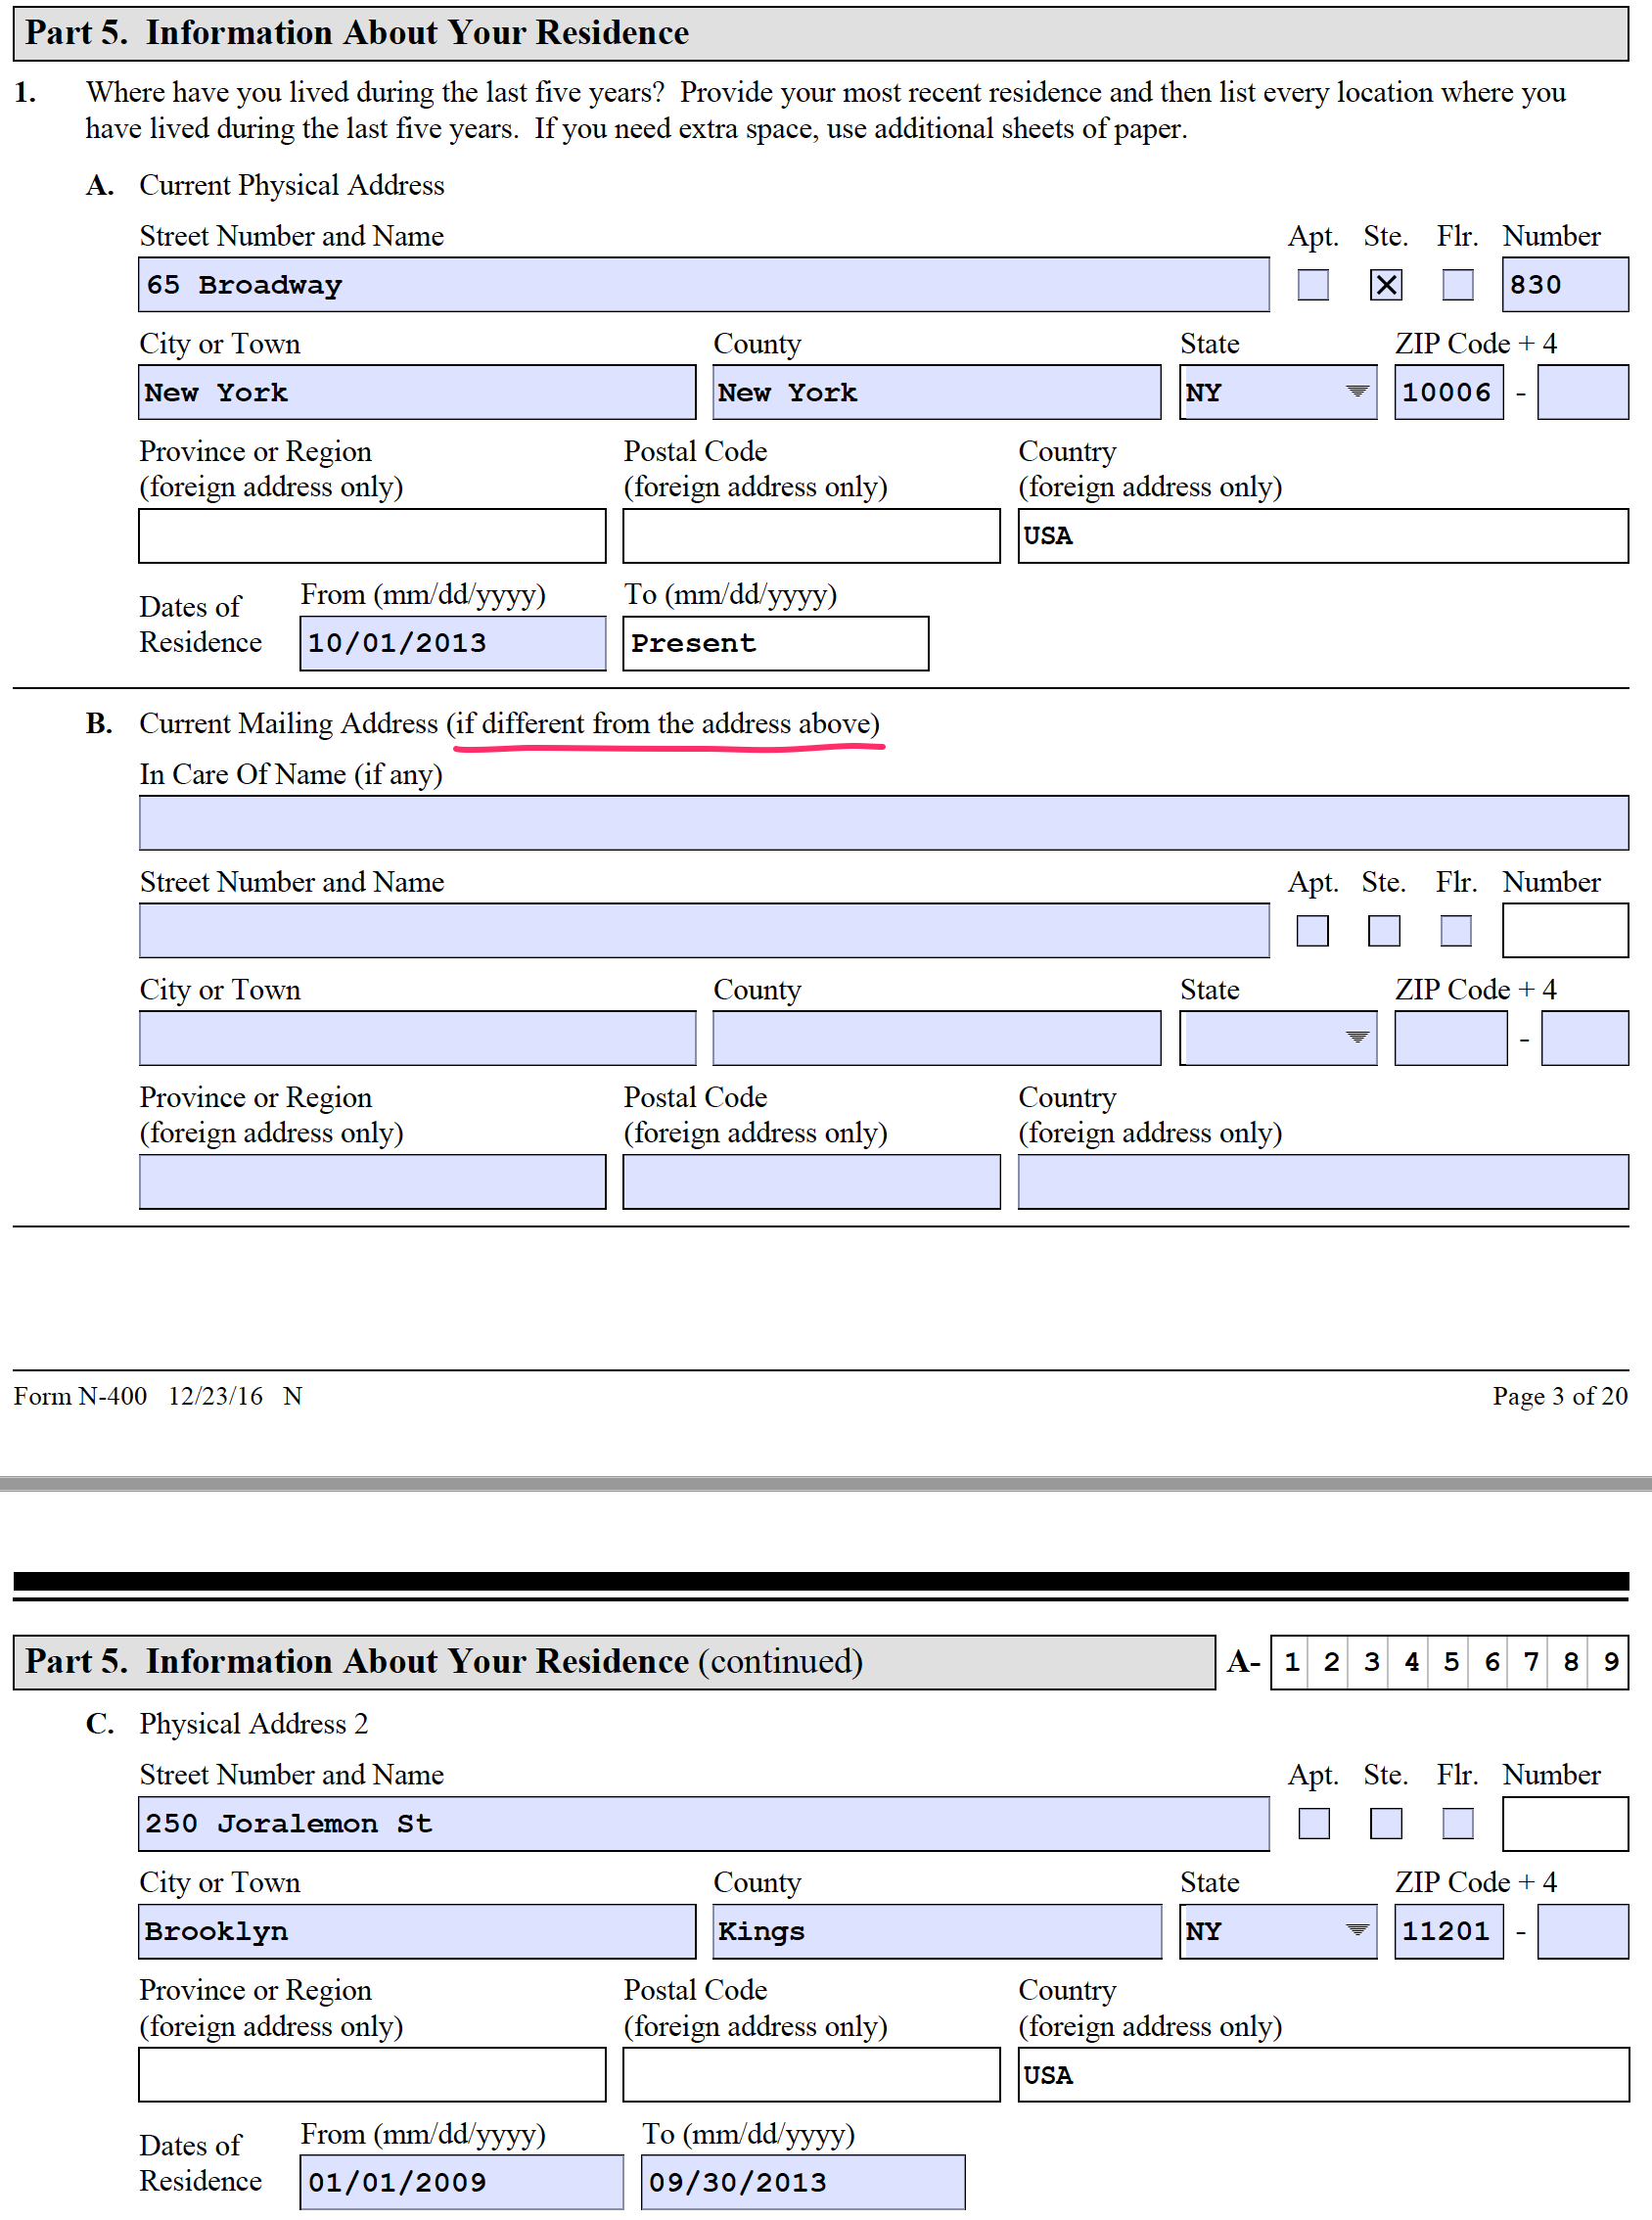 n-400_pdf__SECURED_-5 Form N Application For Naturalization Pdf on n-400 sample cover letter, dairy queen printable applications pdf, n-400 printable, n-400 fees, n-400 sample of completed, n-400 100 questions, n-400 citizenship test, n-400 form print, n-400 card, n-400 form filled, printable job applications pdf, n-400 citizen forms, sample minutes of meeting pdf,